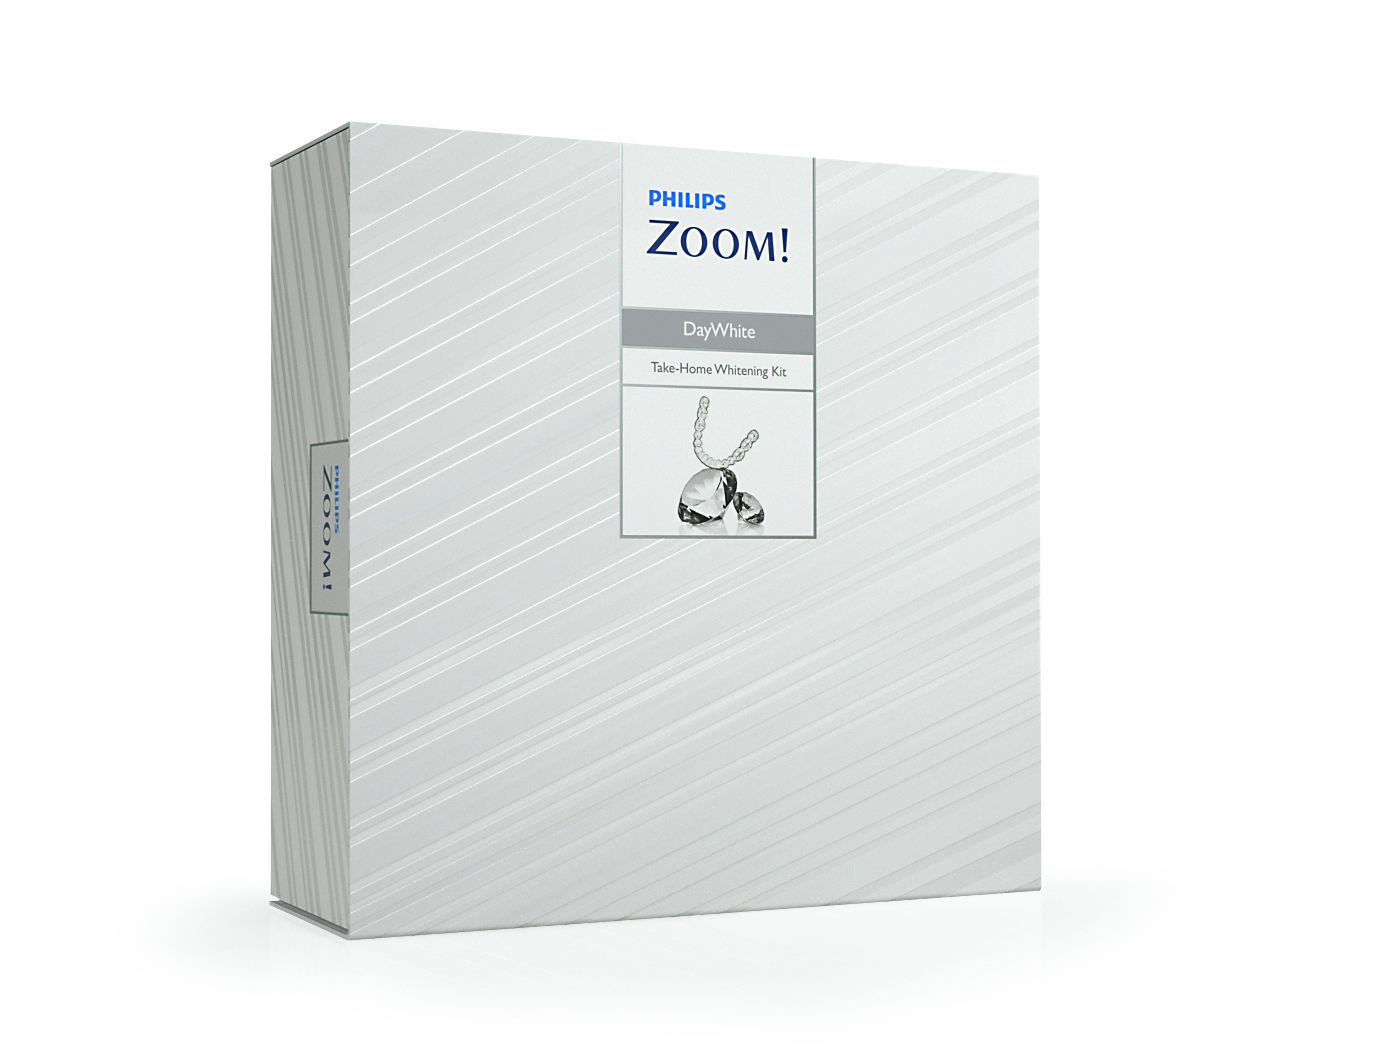 Philips Zoom DW CMYK